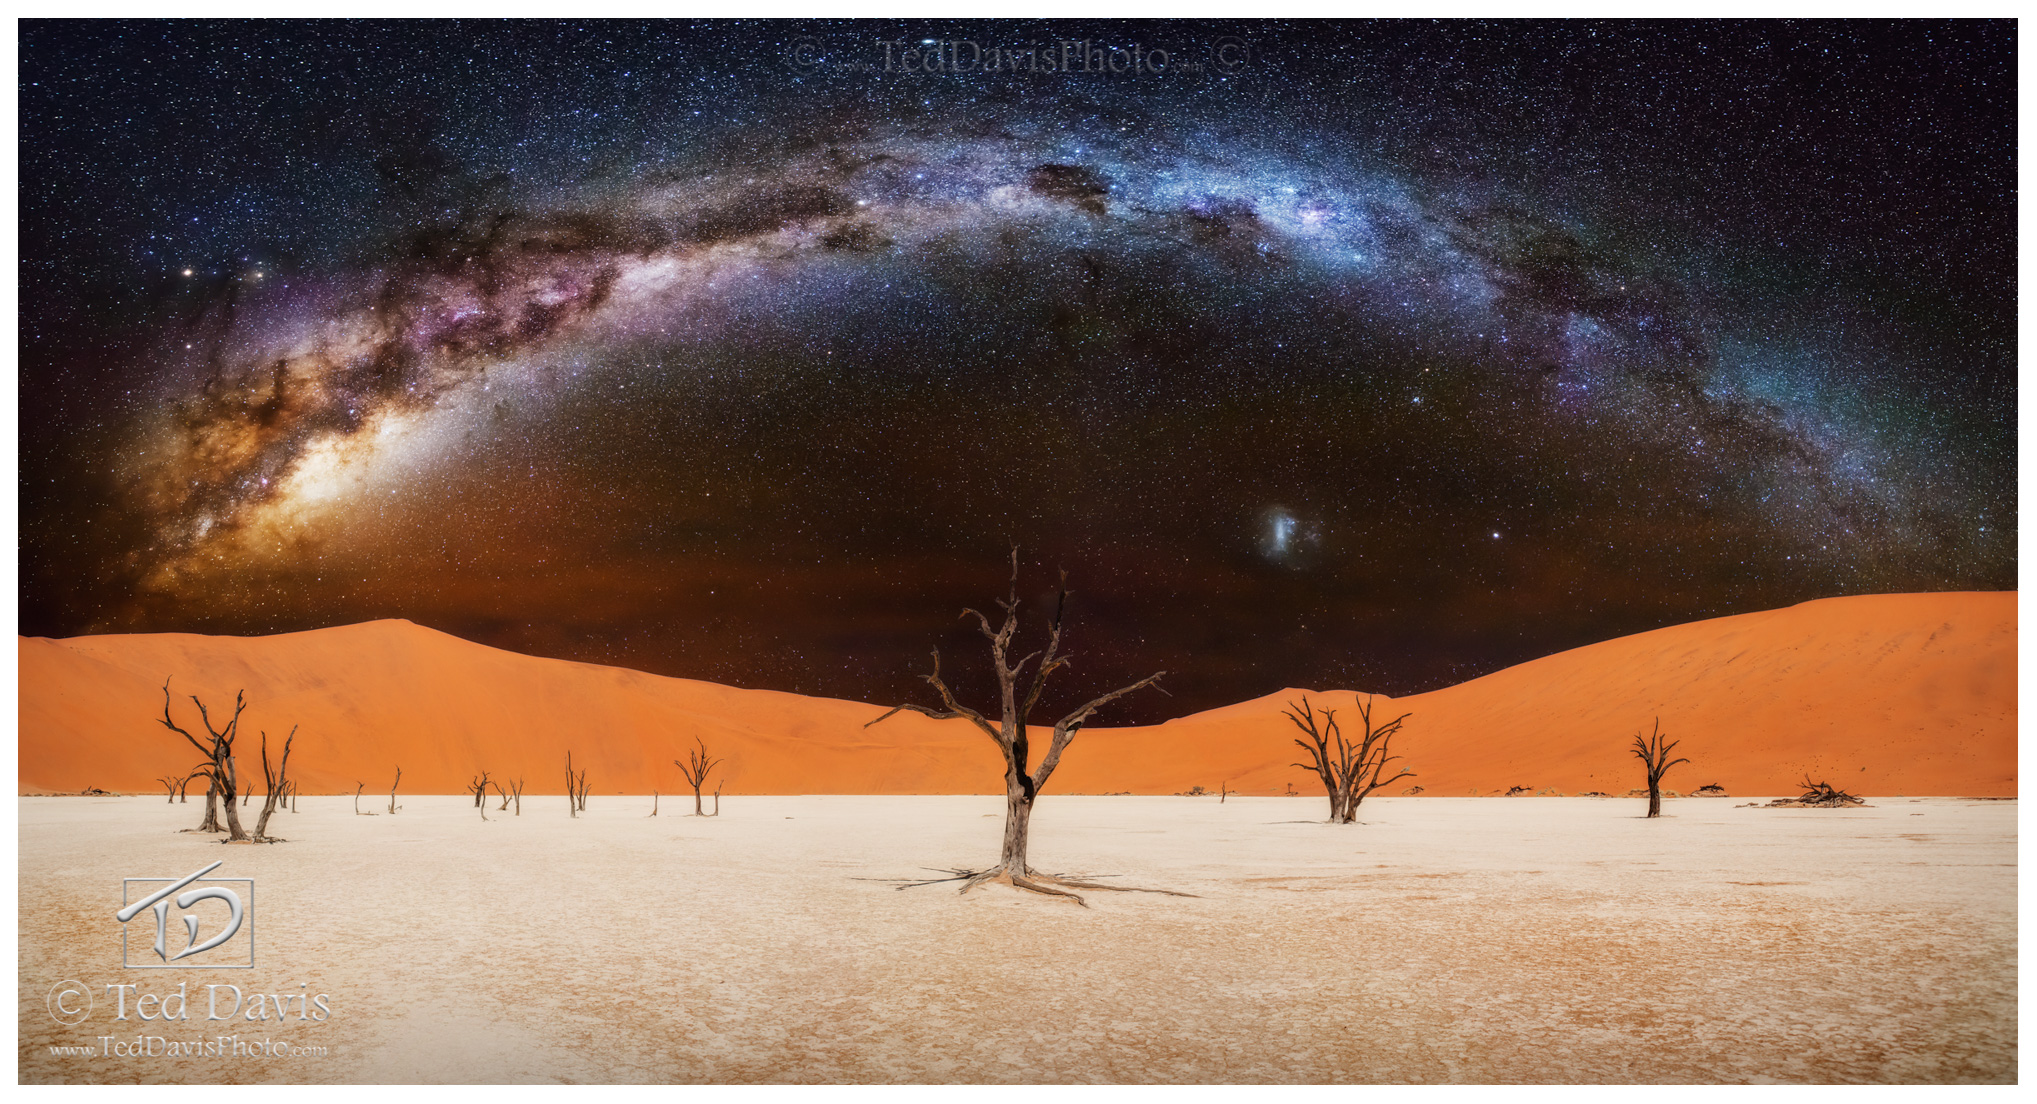 Deadvlei, Milky, Way, Acacia, Salt, sand, dunes, terrified, chetah, coyotes, long exposures, panoramics, stars, starlight, radiant, radiance, sky, photo